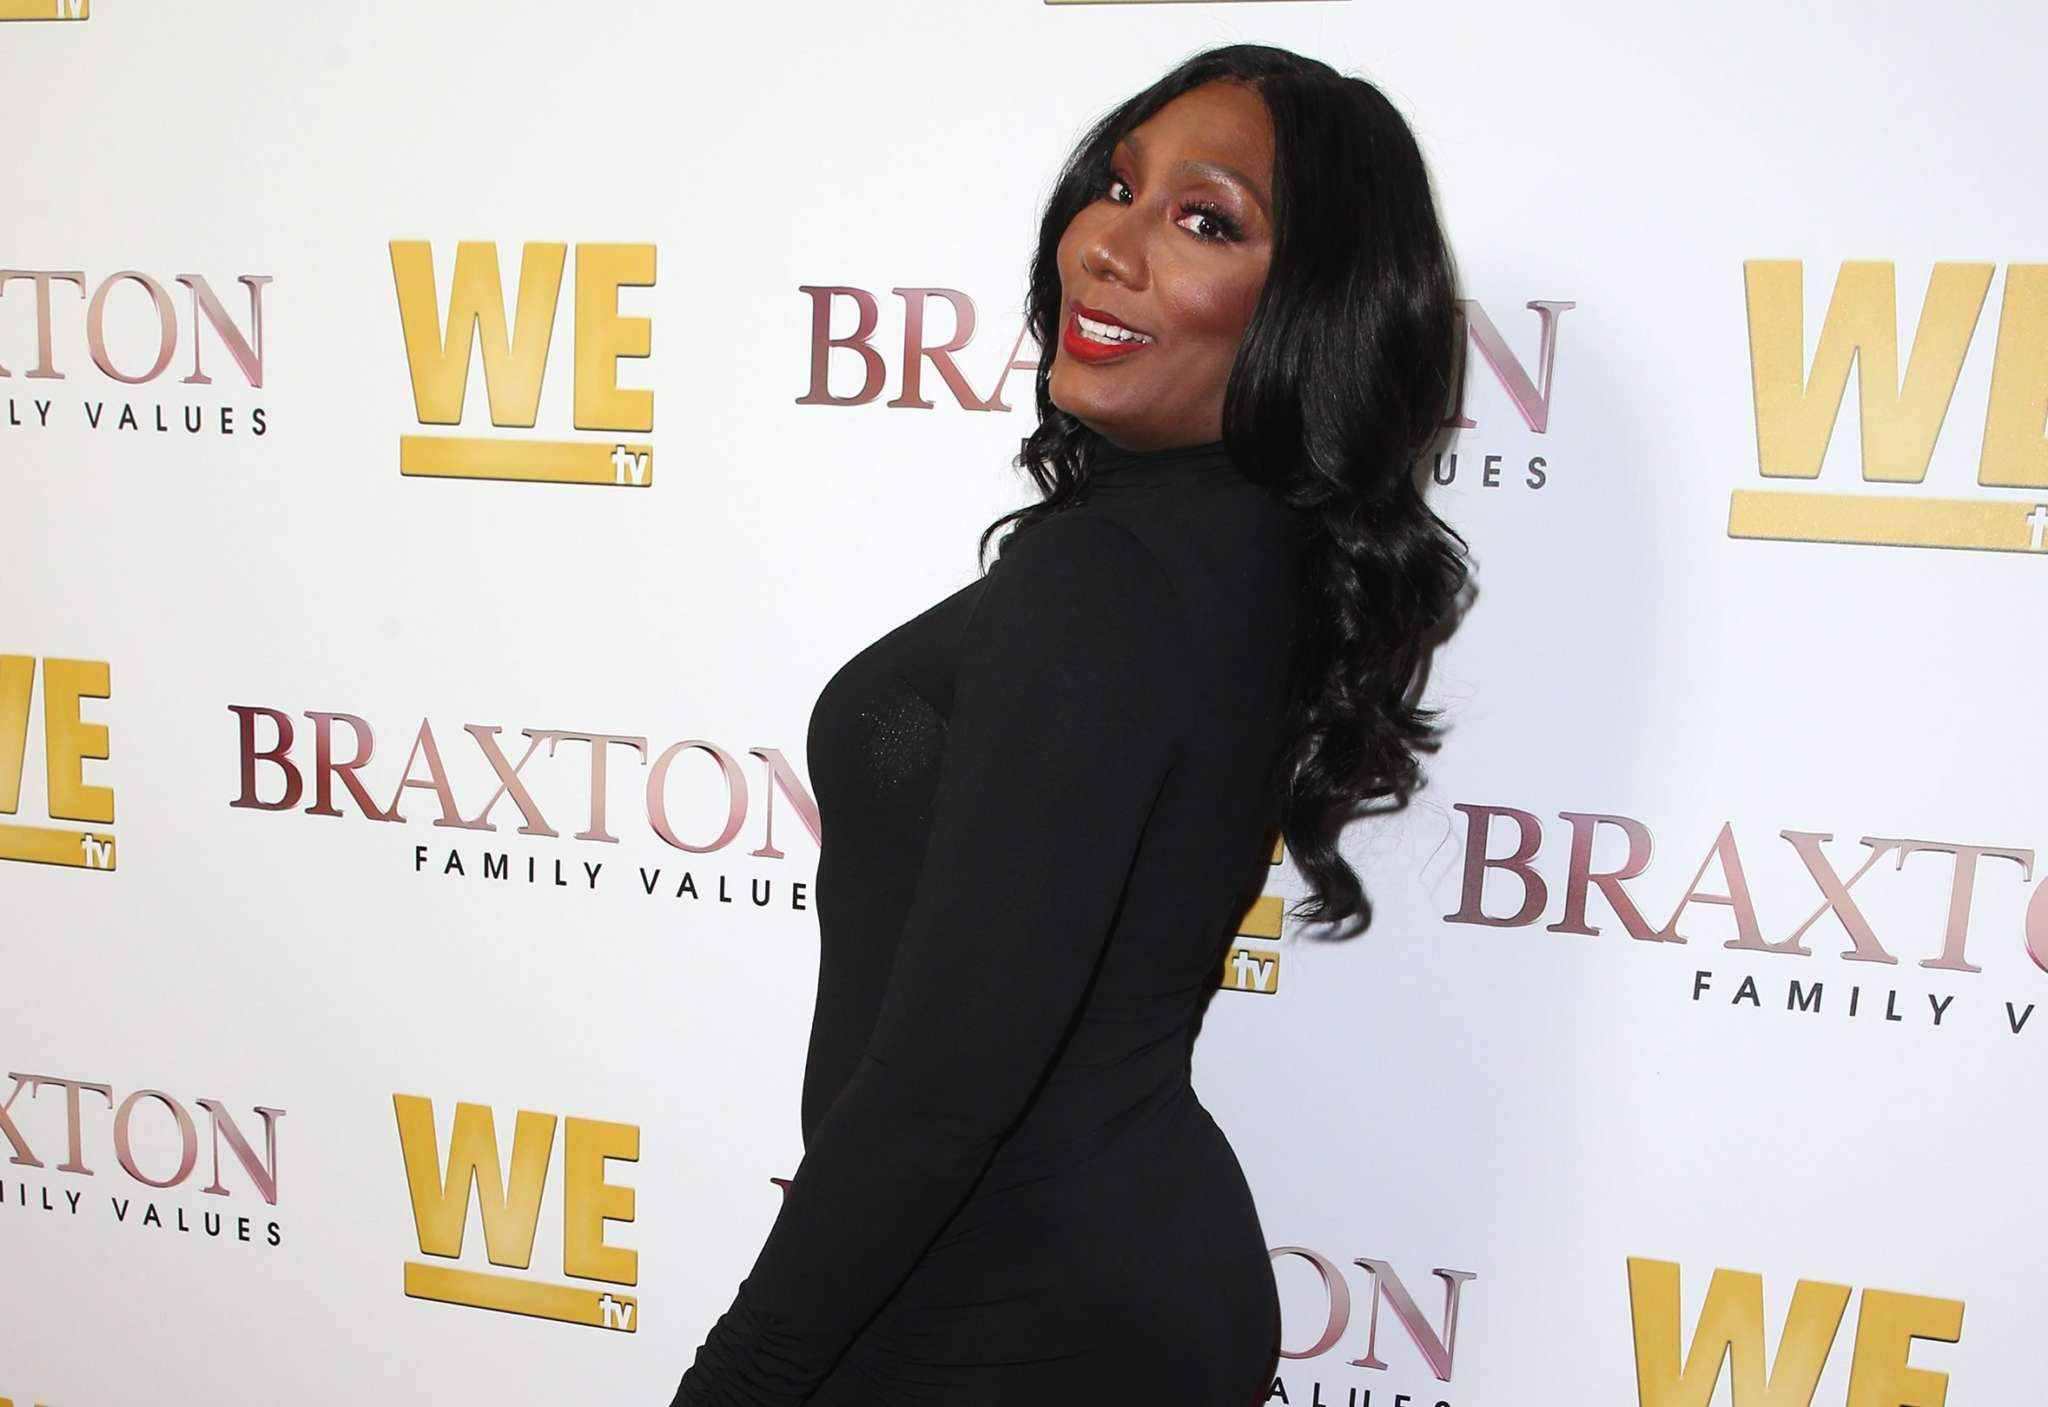 towanda-braxton-makes-fans-excited-on-social-media-with-new-footage